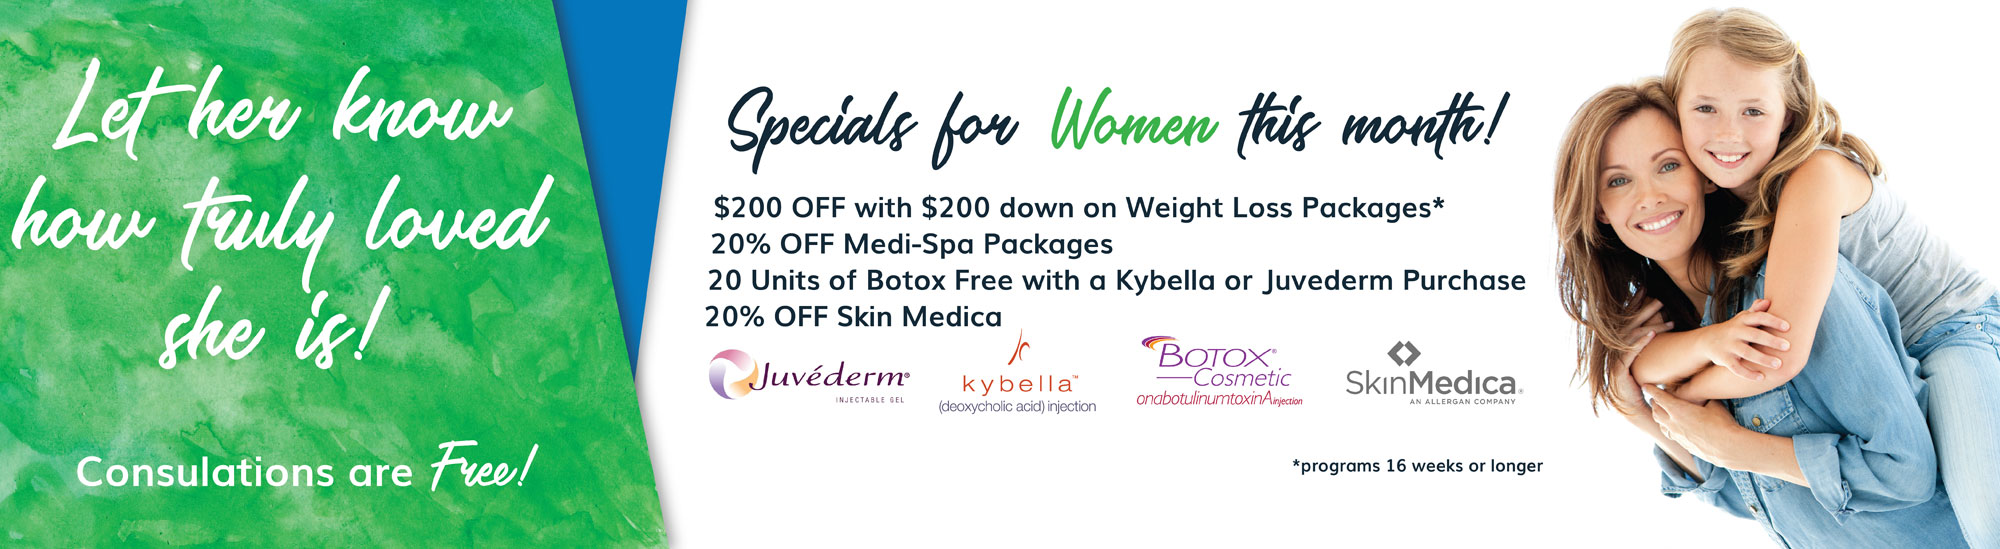 NuYou Weight Loss May is Mother's Day and Specials for Women 2018